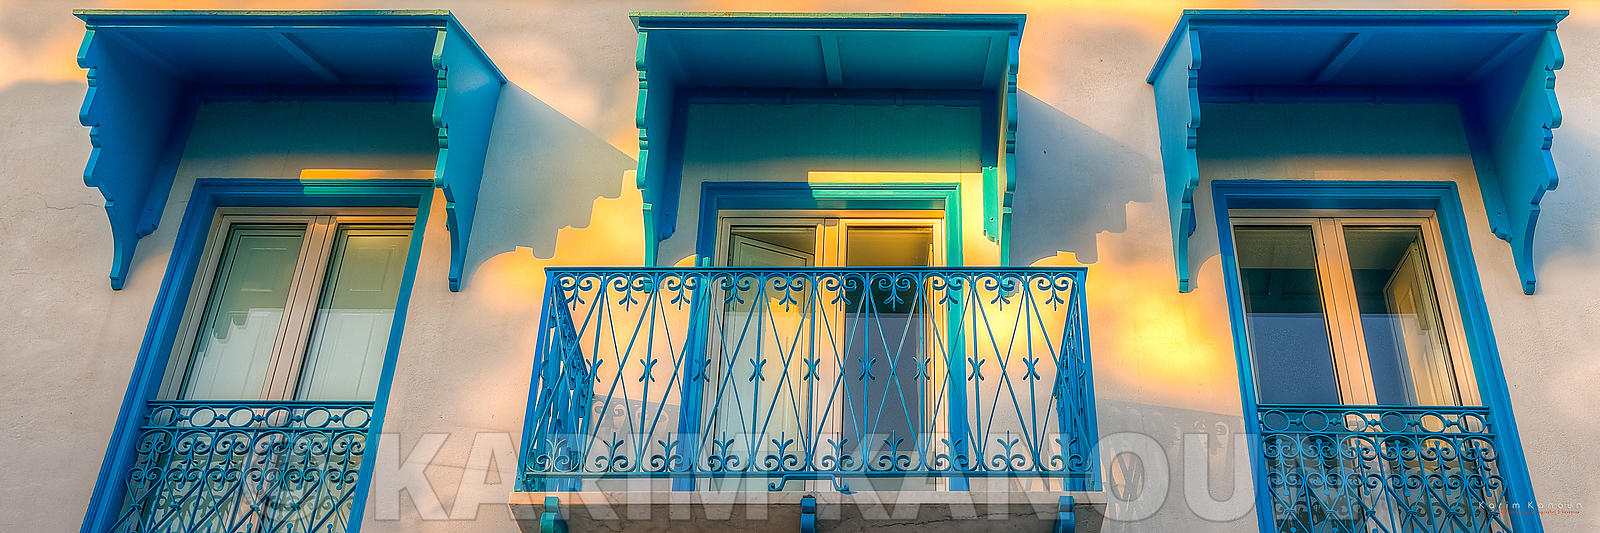 Panorama - Tradional tunisian windows architecture Sidi Bou Said Tunisia